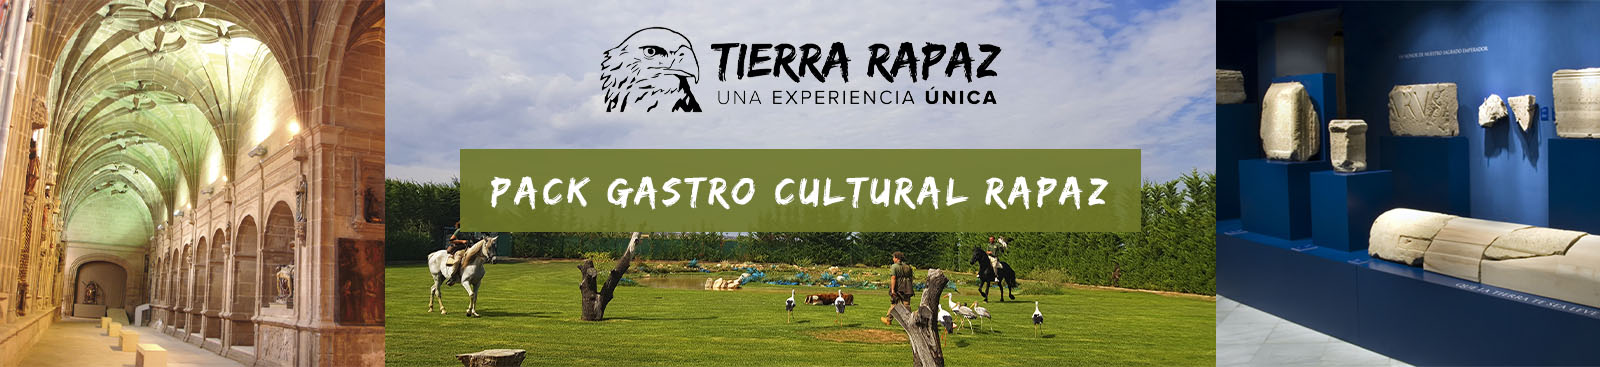 Pack Gastro Cultural Rapaz